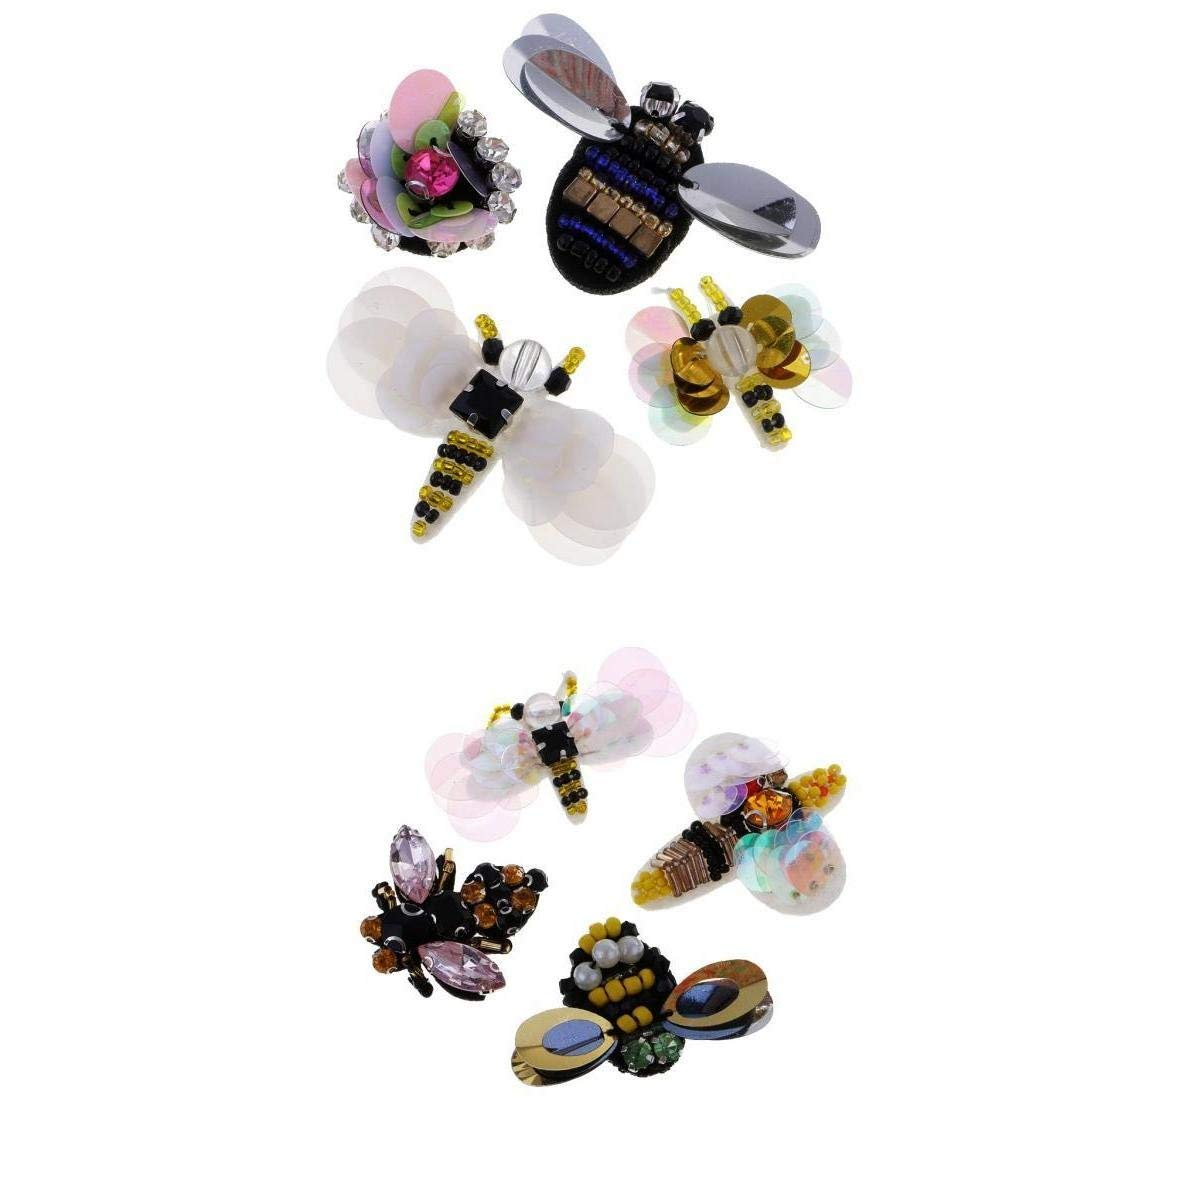 Tiny Wooden Bee Embellishments Painted Flatback Wood Bumble Bee Pieces With Adhesive And Velvet Bag For Craft Decoration Scrapbooking Diy Made Of Wood Firm Lightweight 150 Pieces